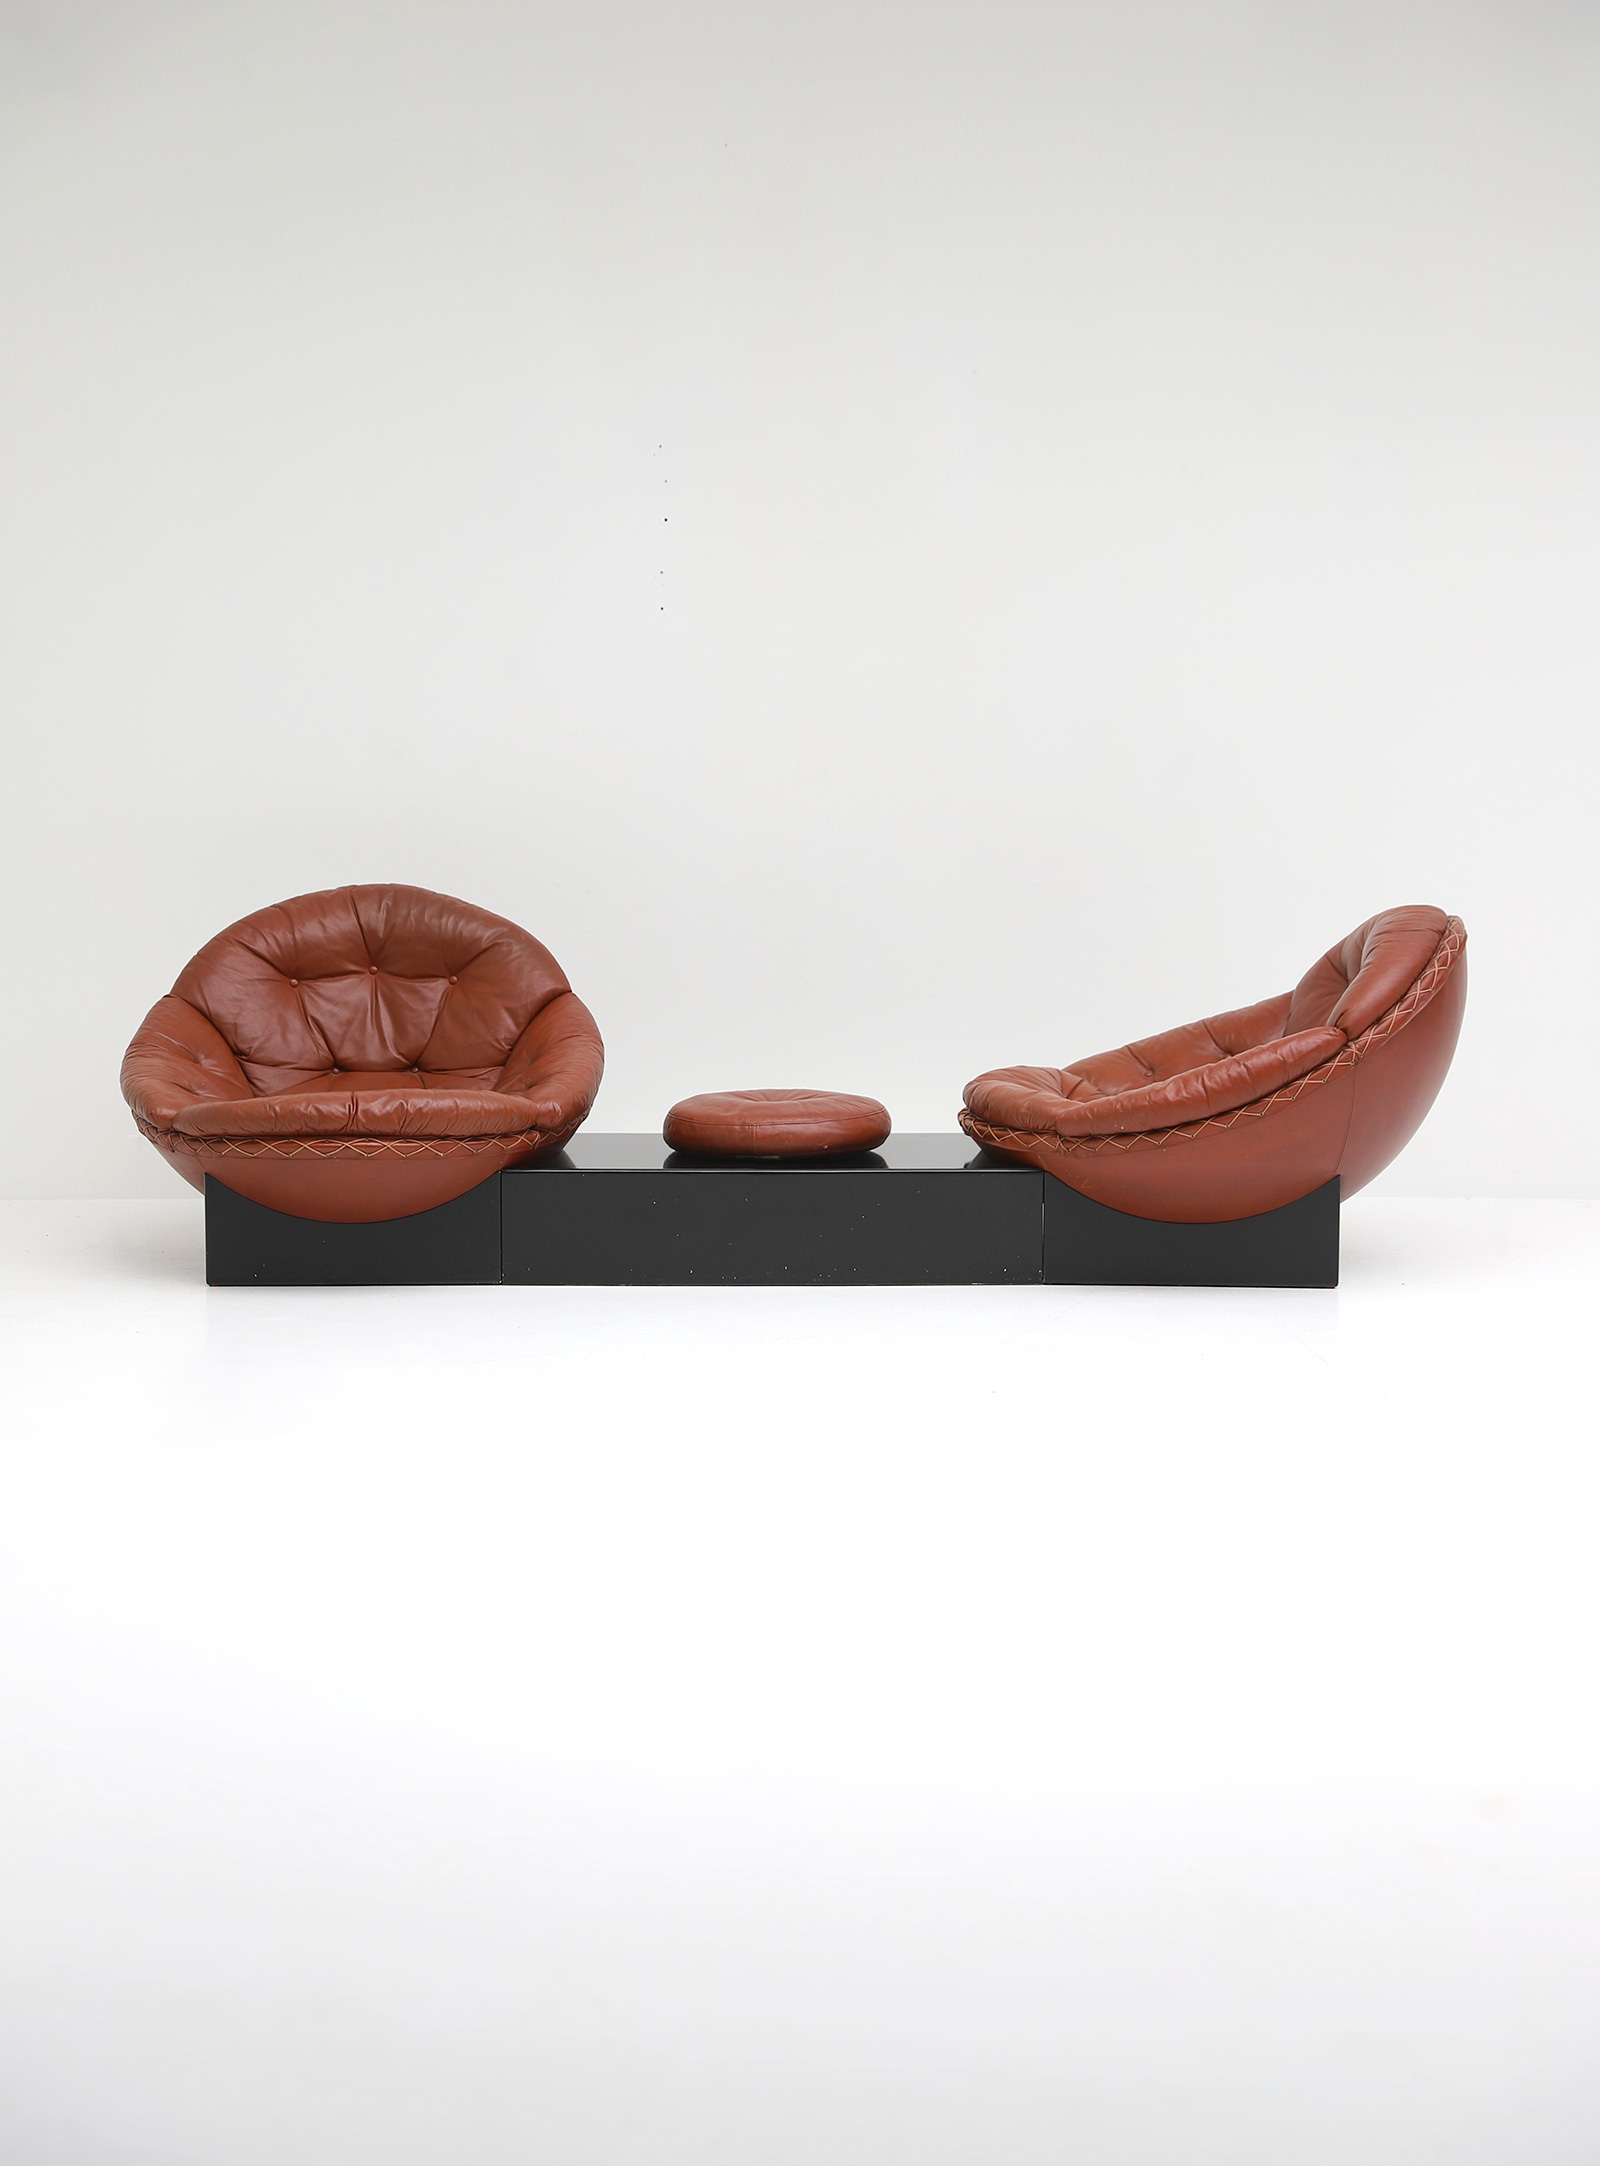 Leather Lounge Chairs by Illum Wikkelso for Ryesberg 1970simage 12